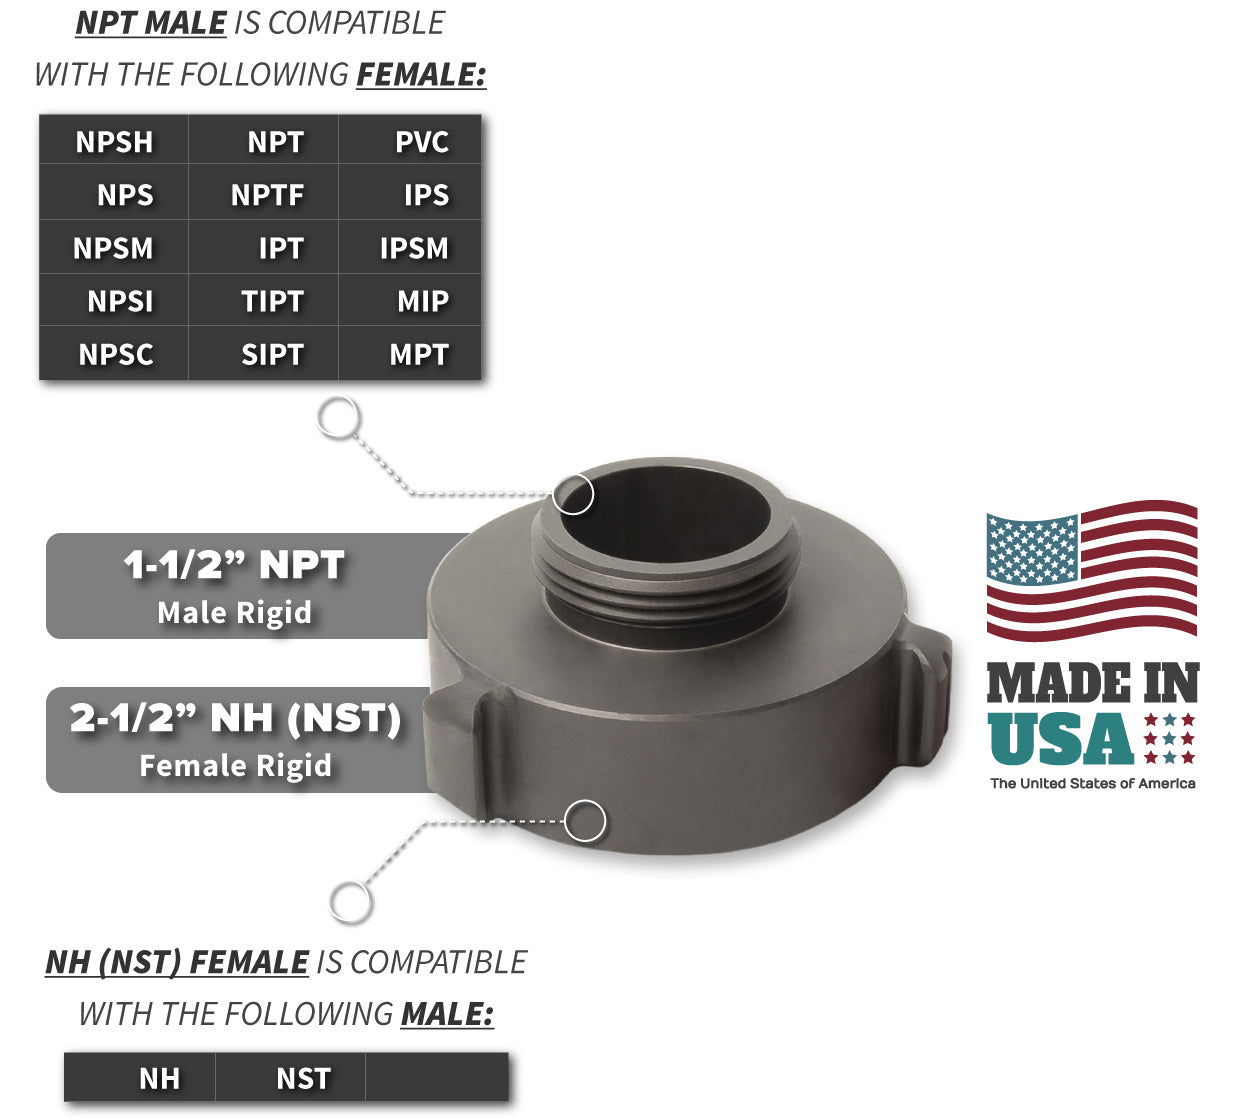 2.5 Inch NH-NST Female x 1.5 Inch NPT Male Compatibility Thread Chart